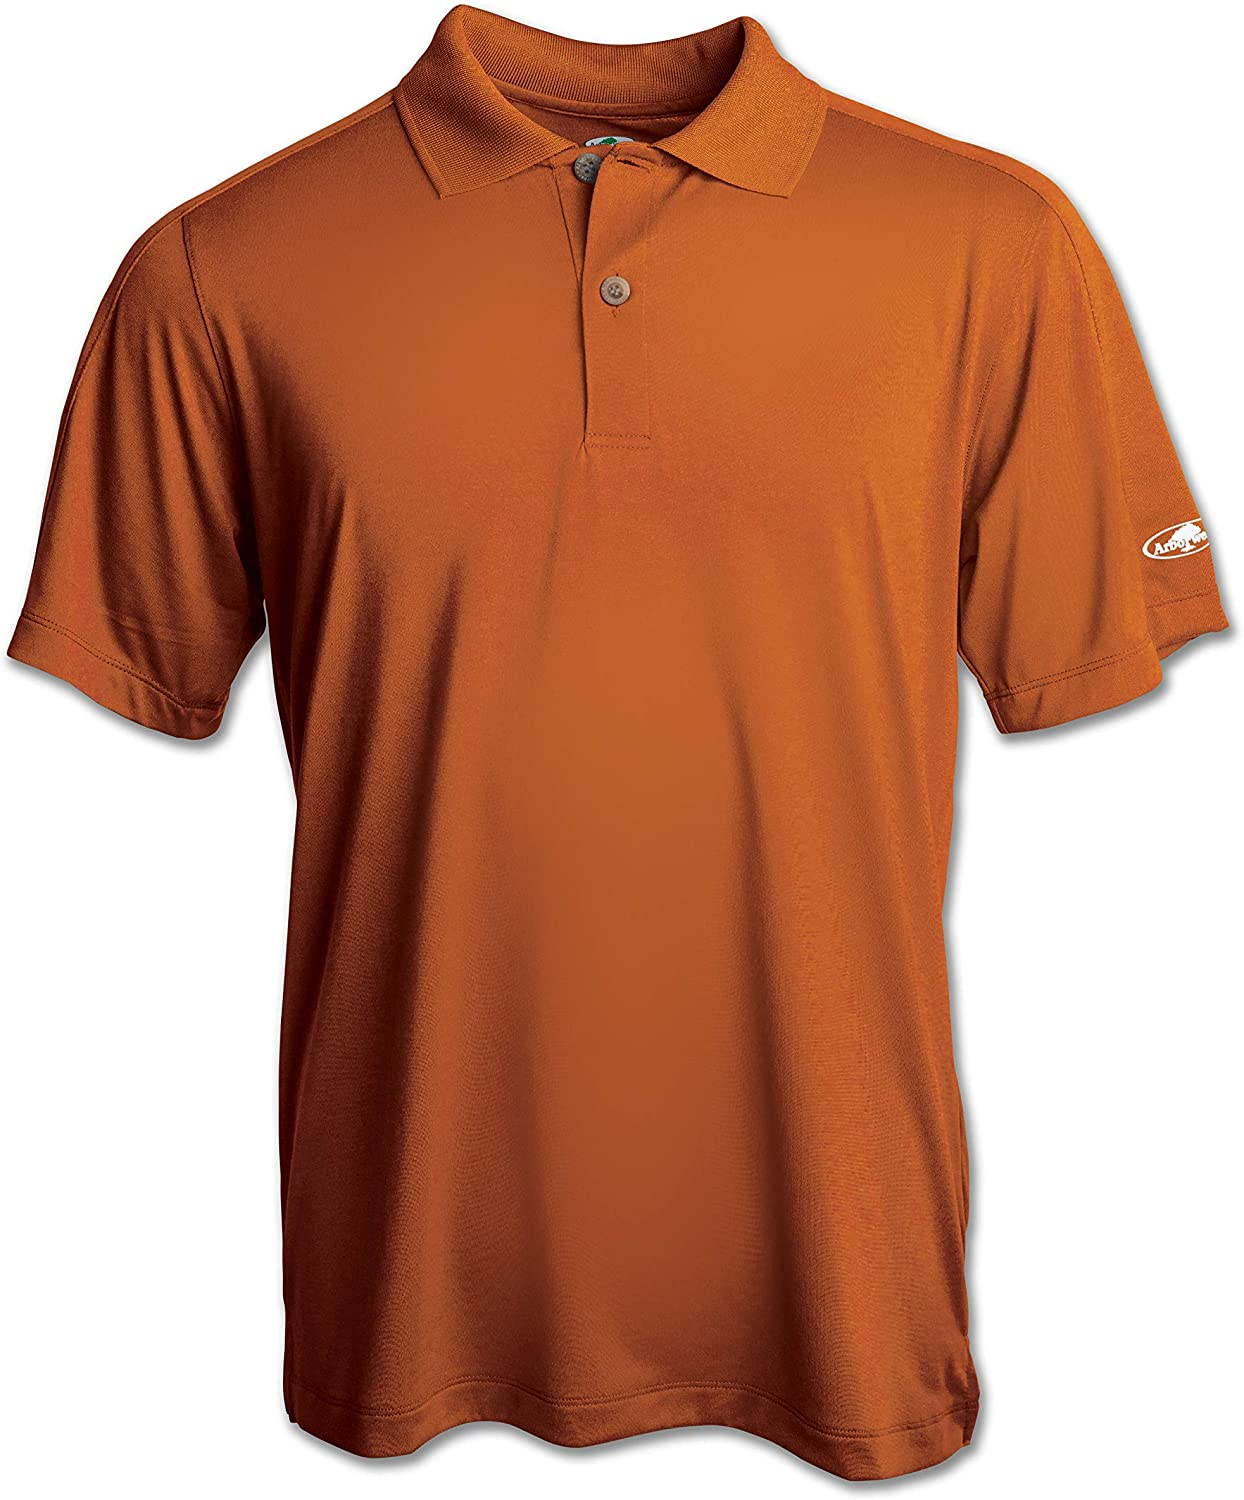 Arborwear Men's 706615 Houston Mall Transpiration Polo Cool GEO with New color Shirt